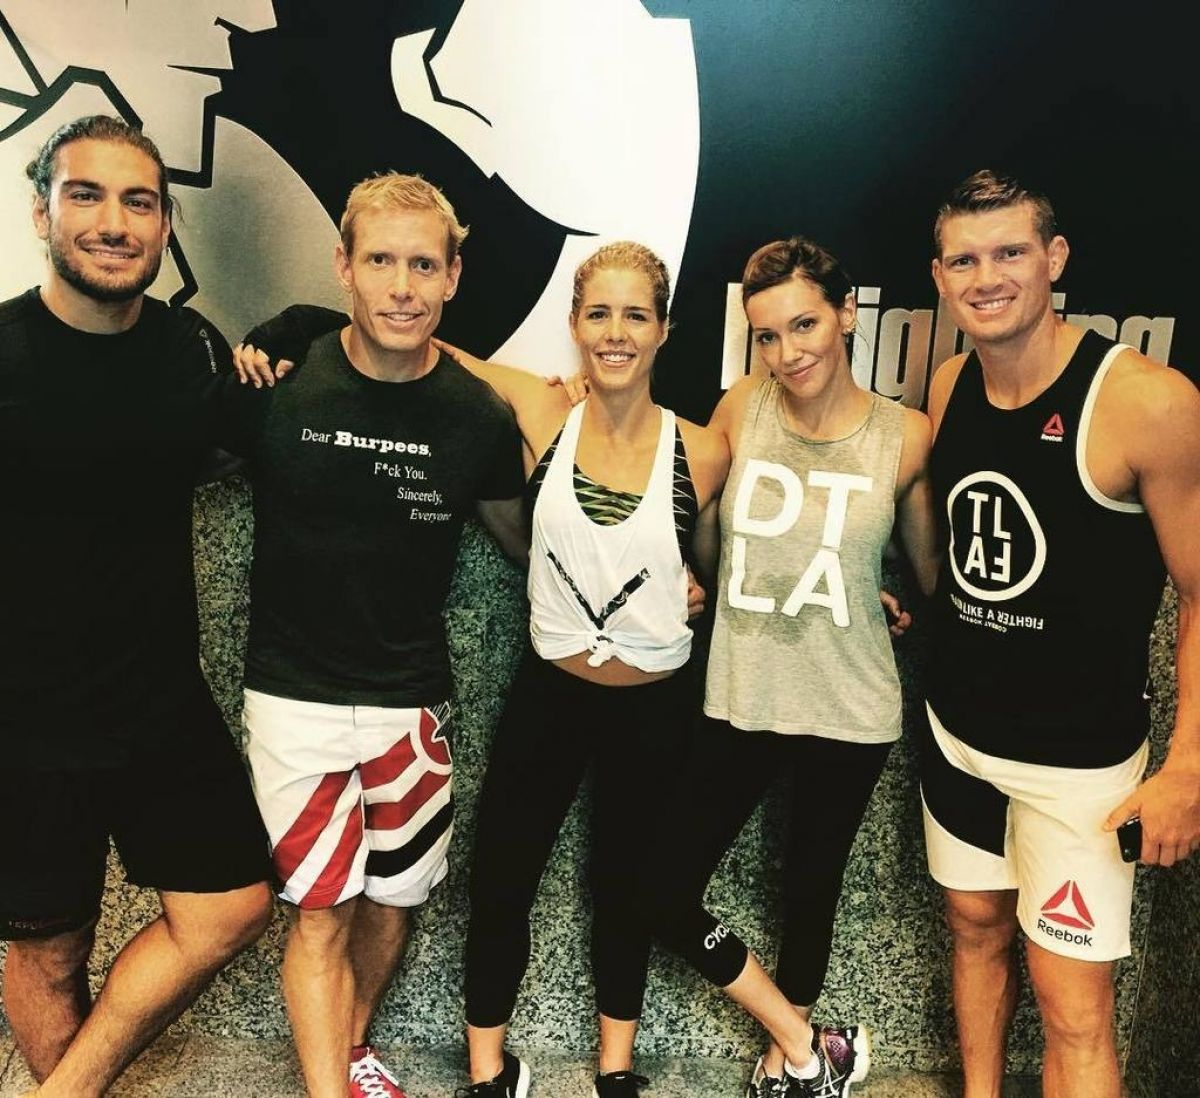 Katie cassidy at ufc training with cast of arrow in vancouver 09 01